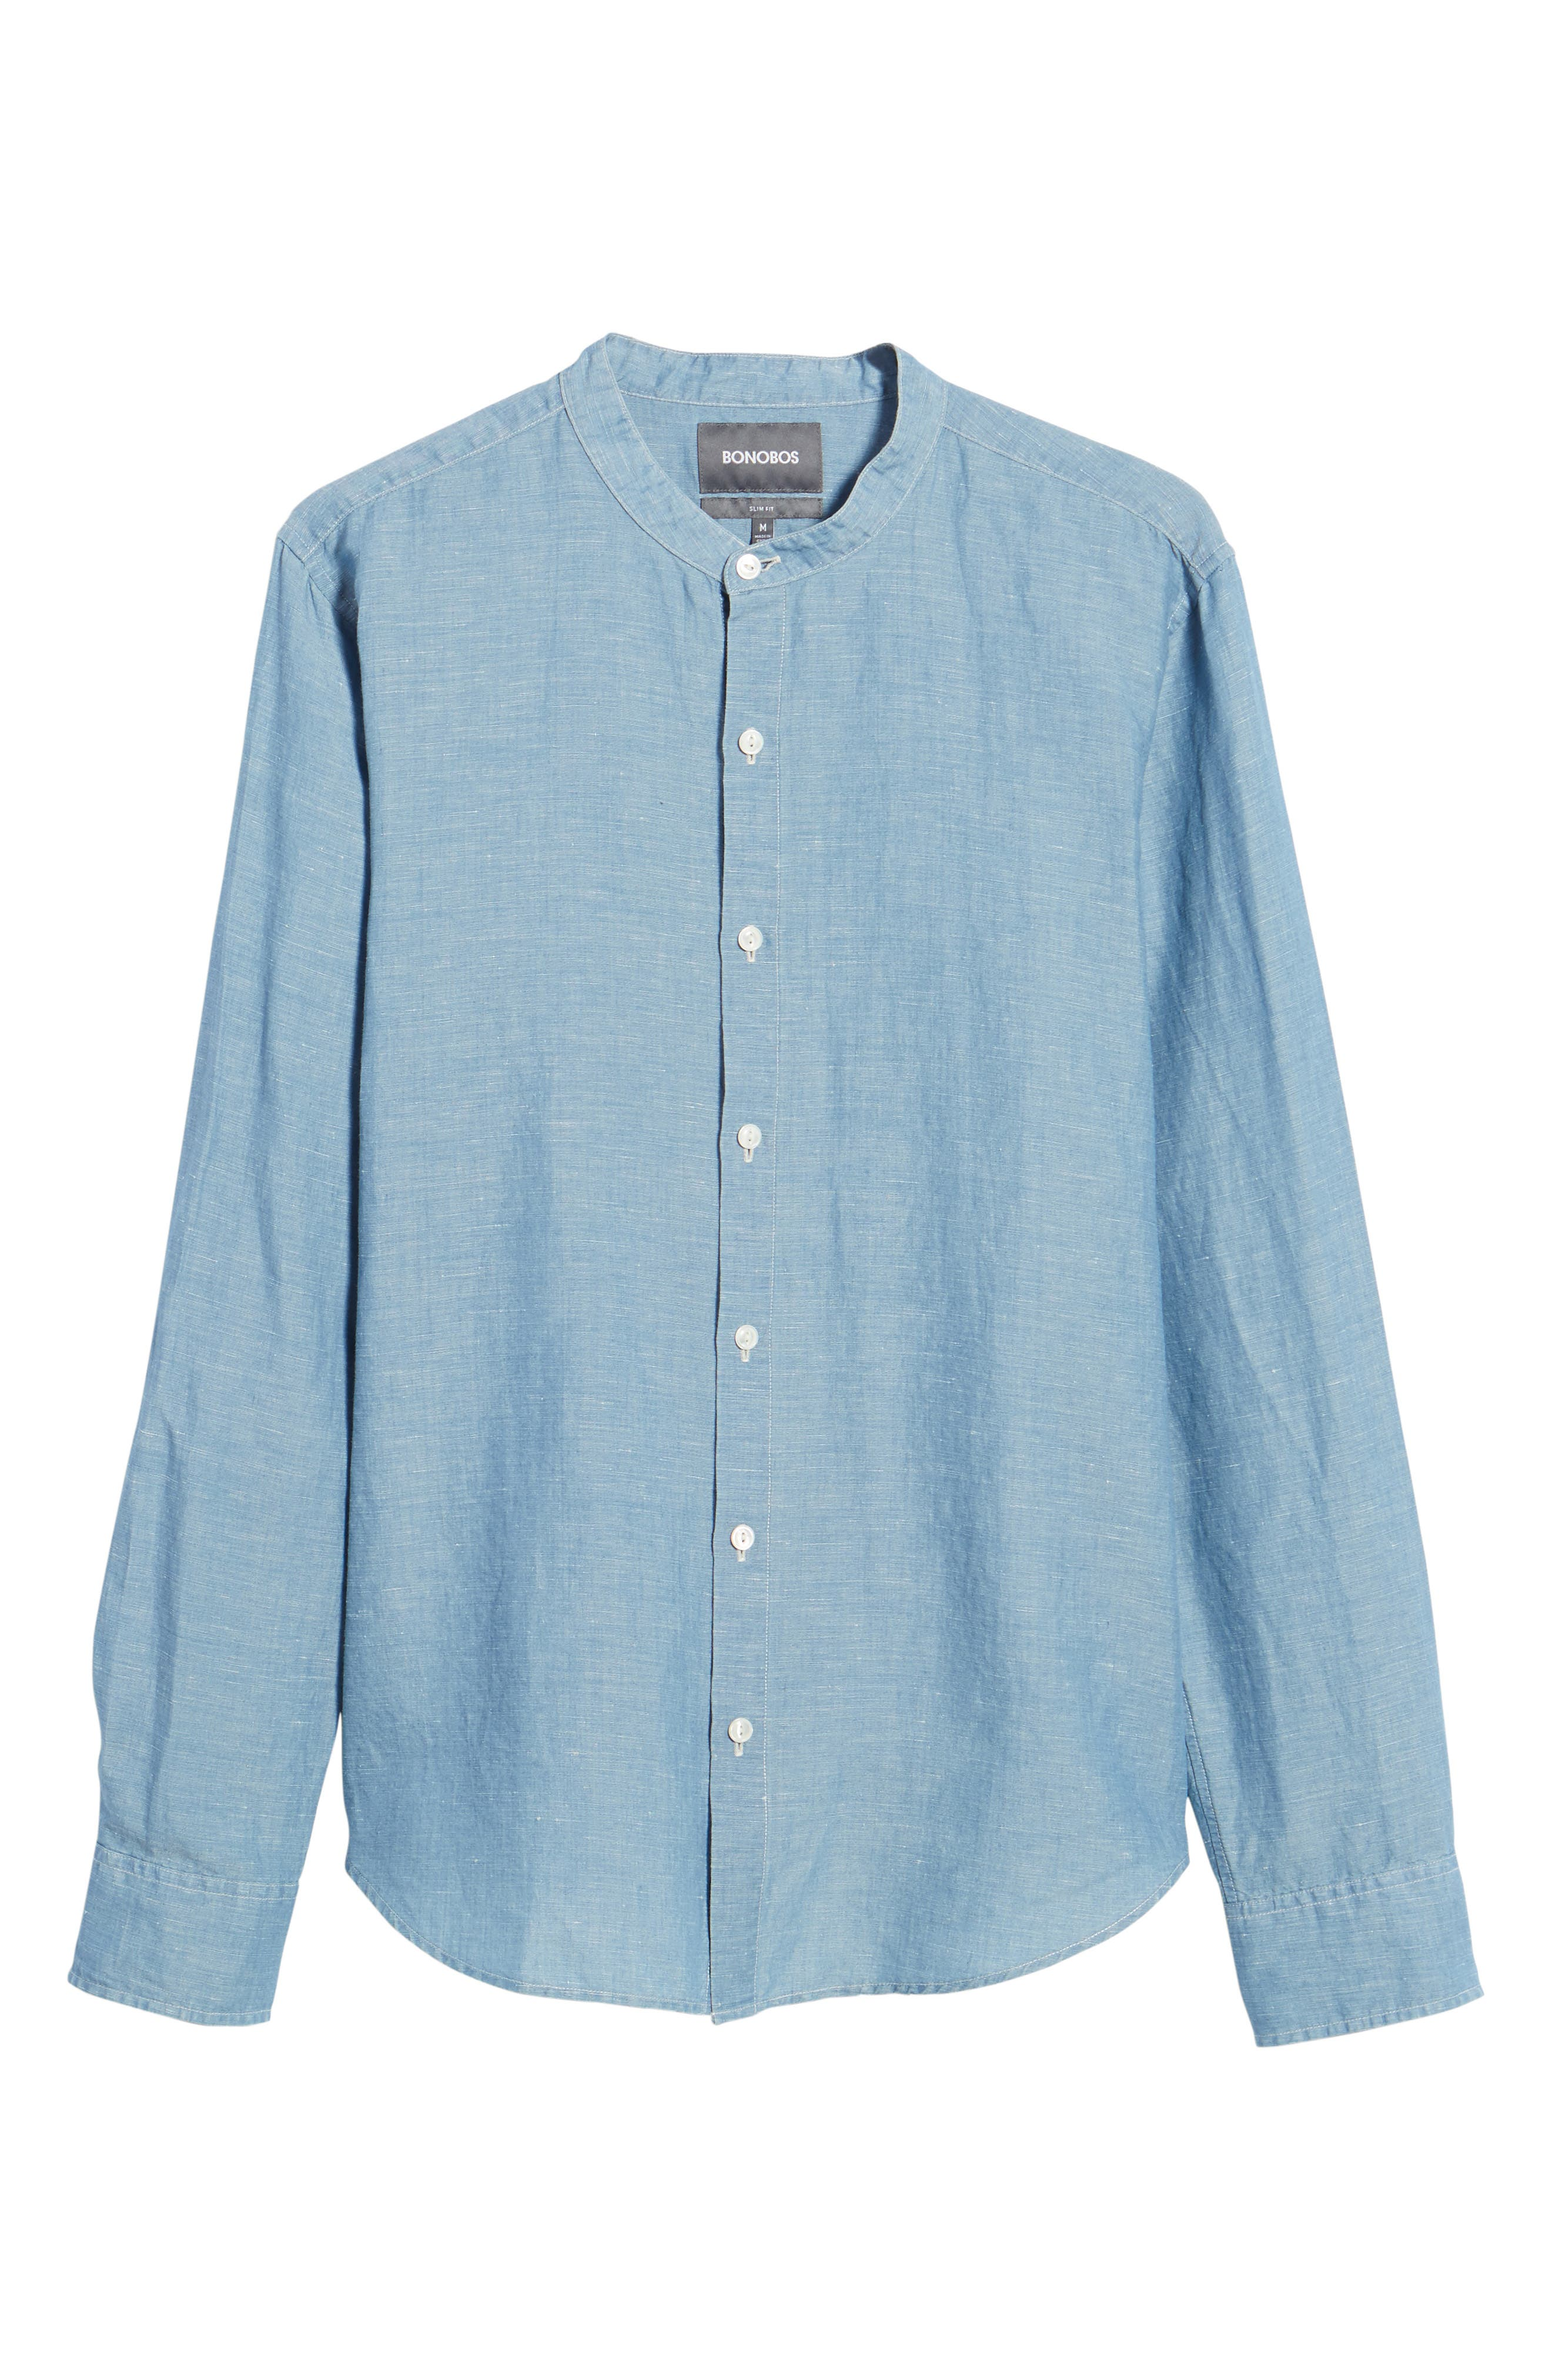 Trim Fit Chambray Sport Shirt,                             Alternate thumbnail 6, color,                             Chambray Bleach Wash